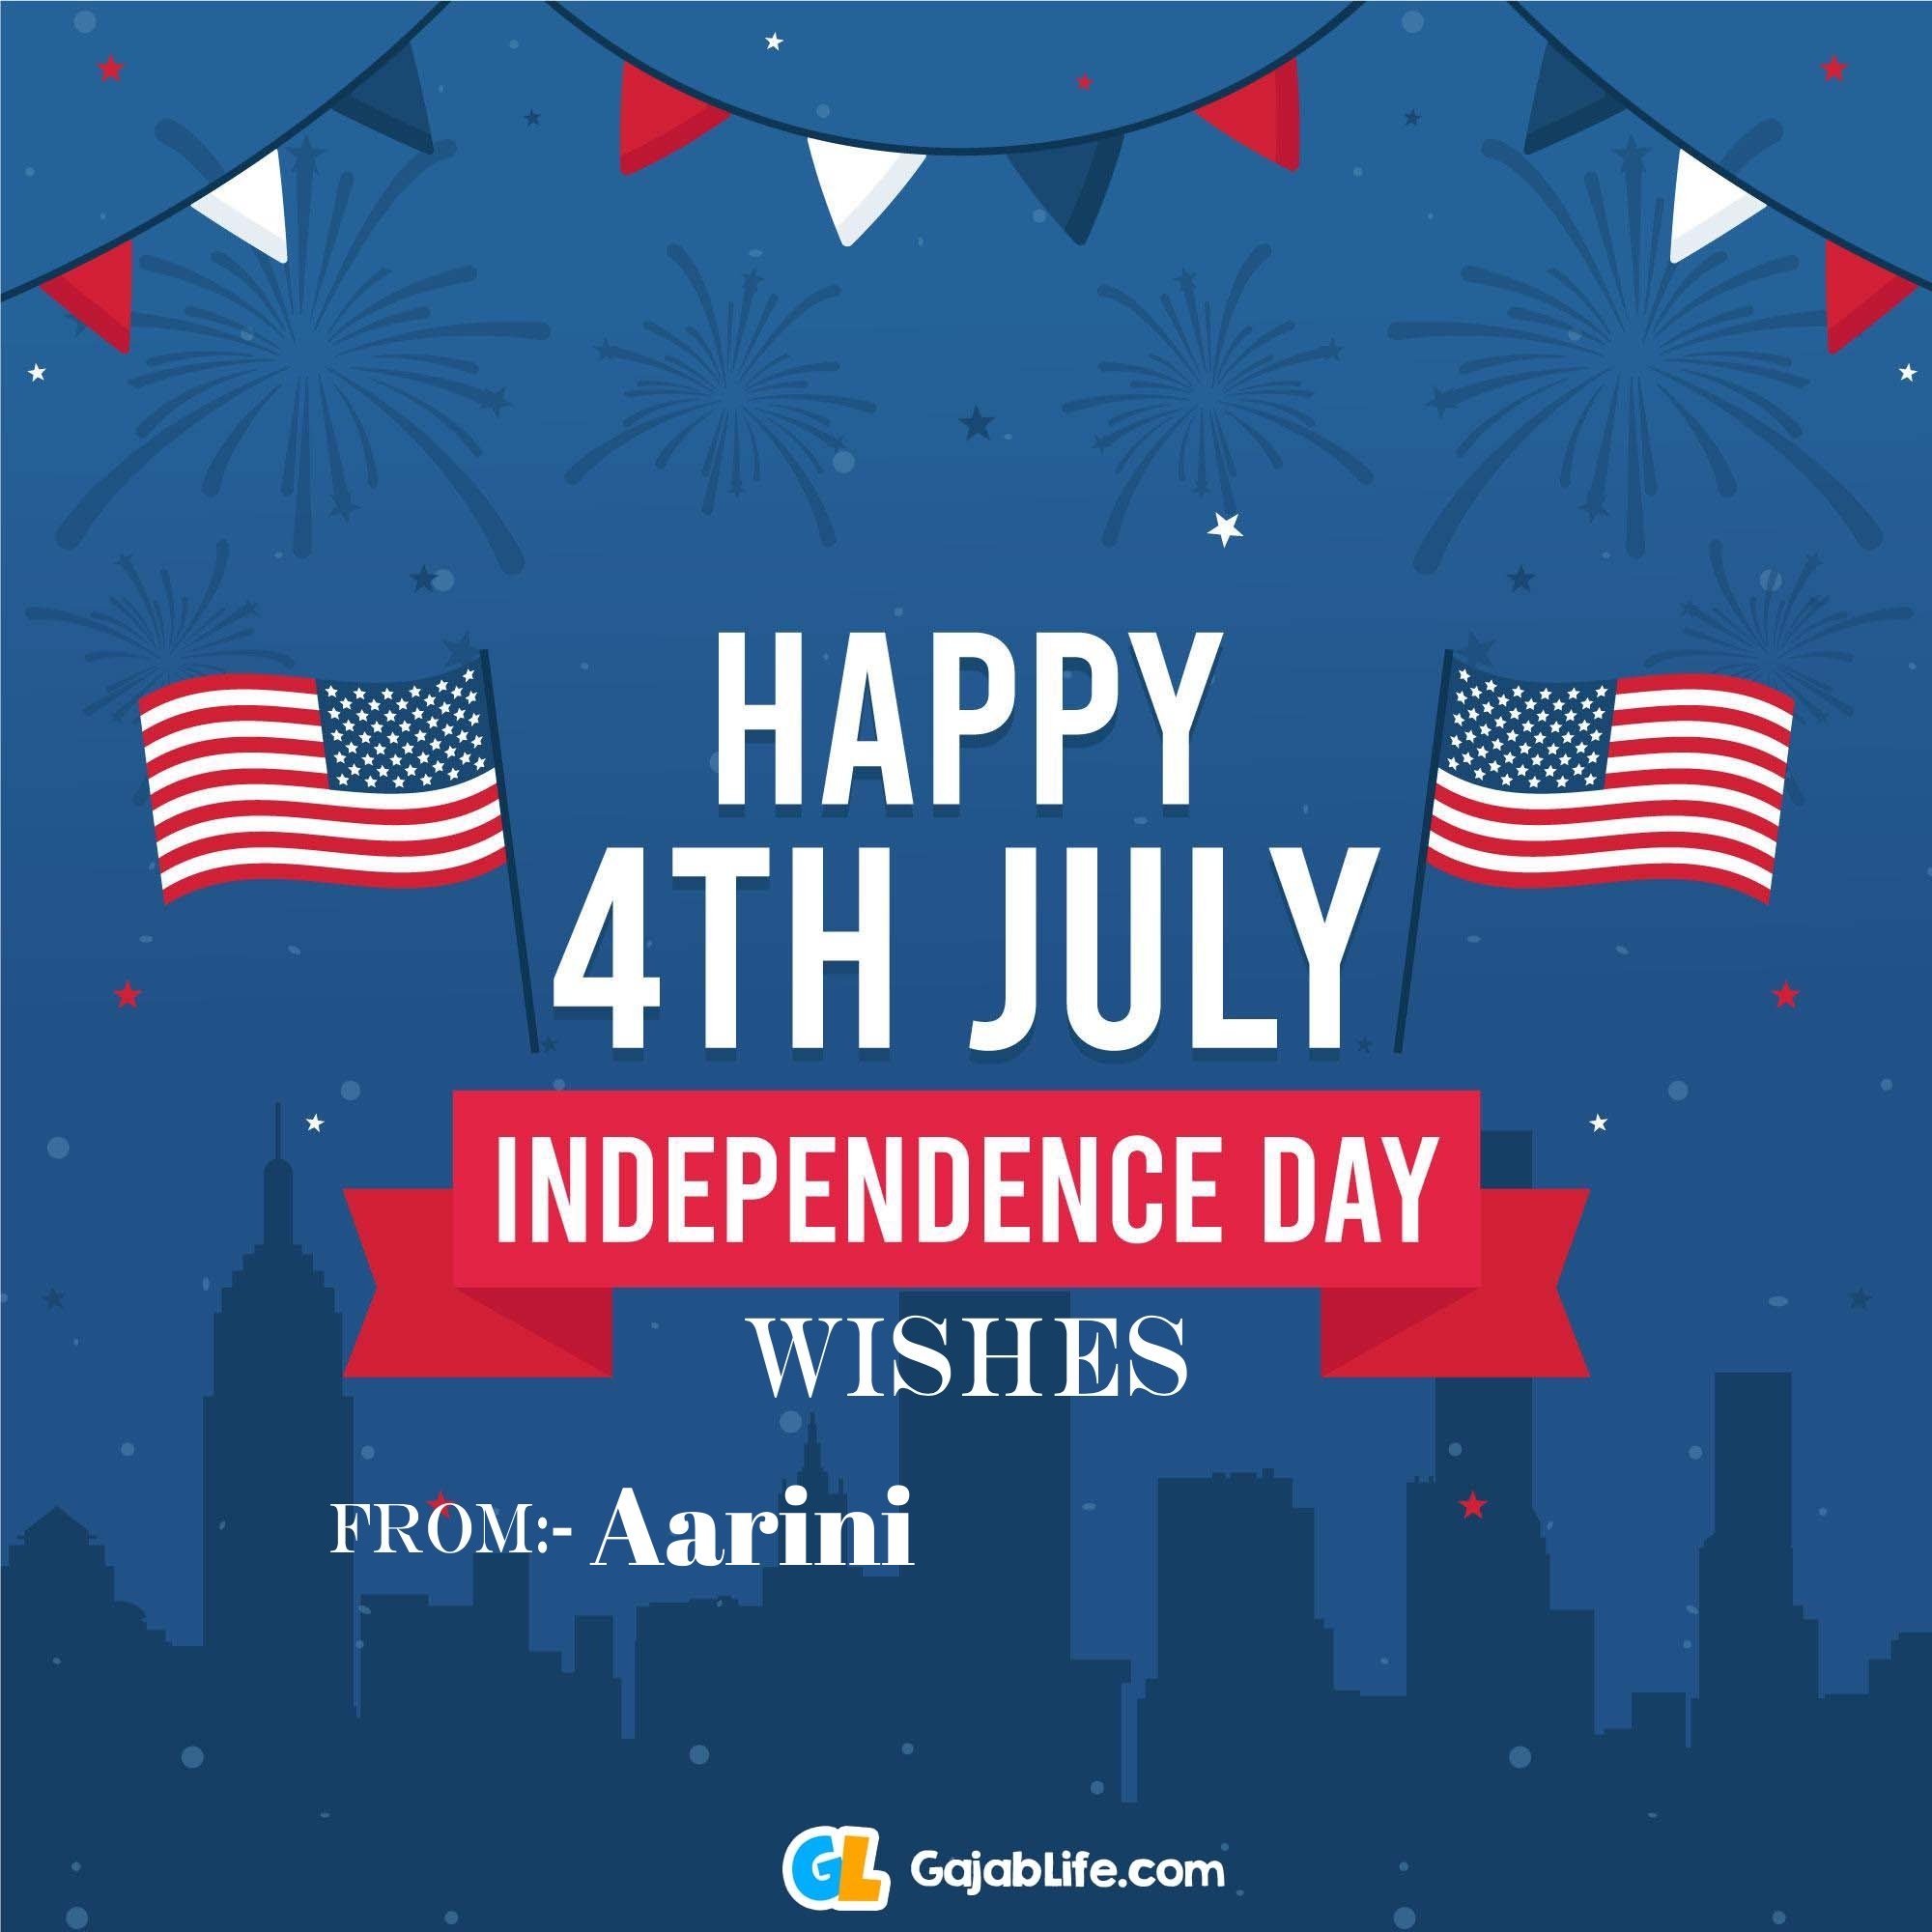 Aarini happy independence day united states of america images